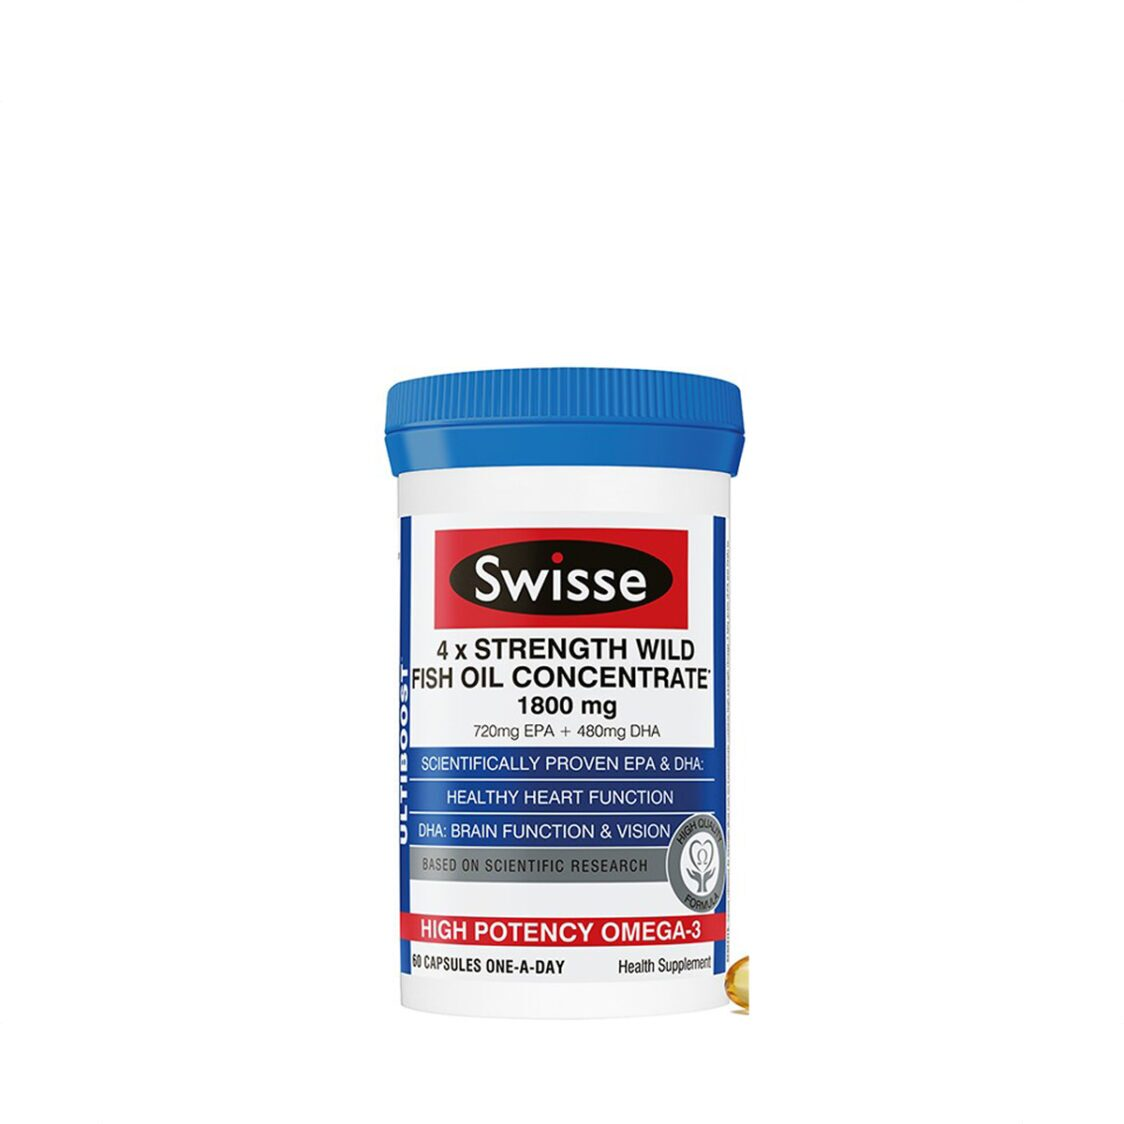 Swisse 4 X Strength Wild Fish Oil Concentrate 60s